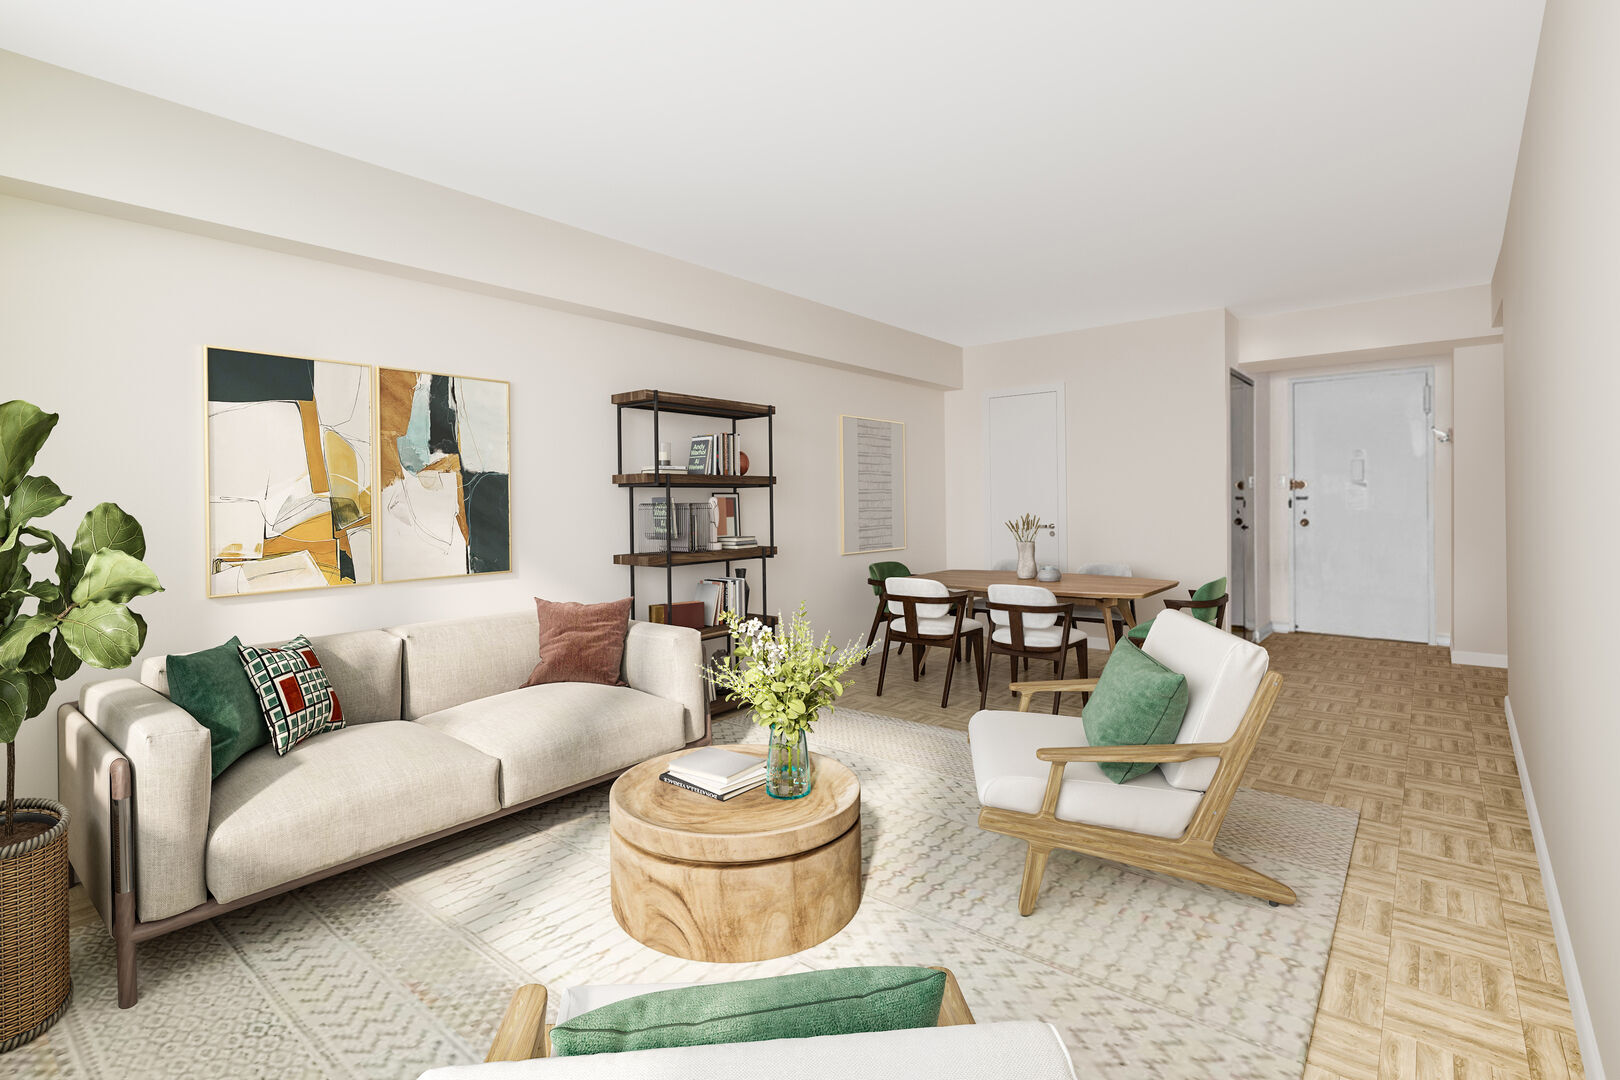 Apartment for sale at 345 East 69th Street, Apt 15-D